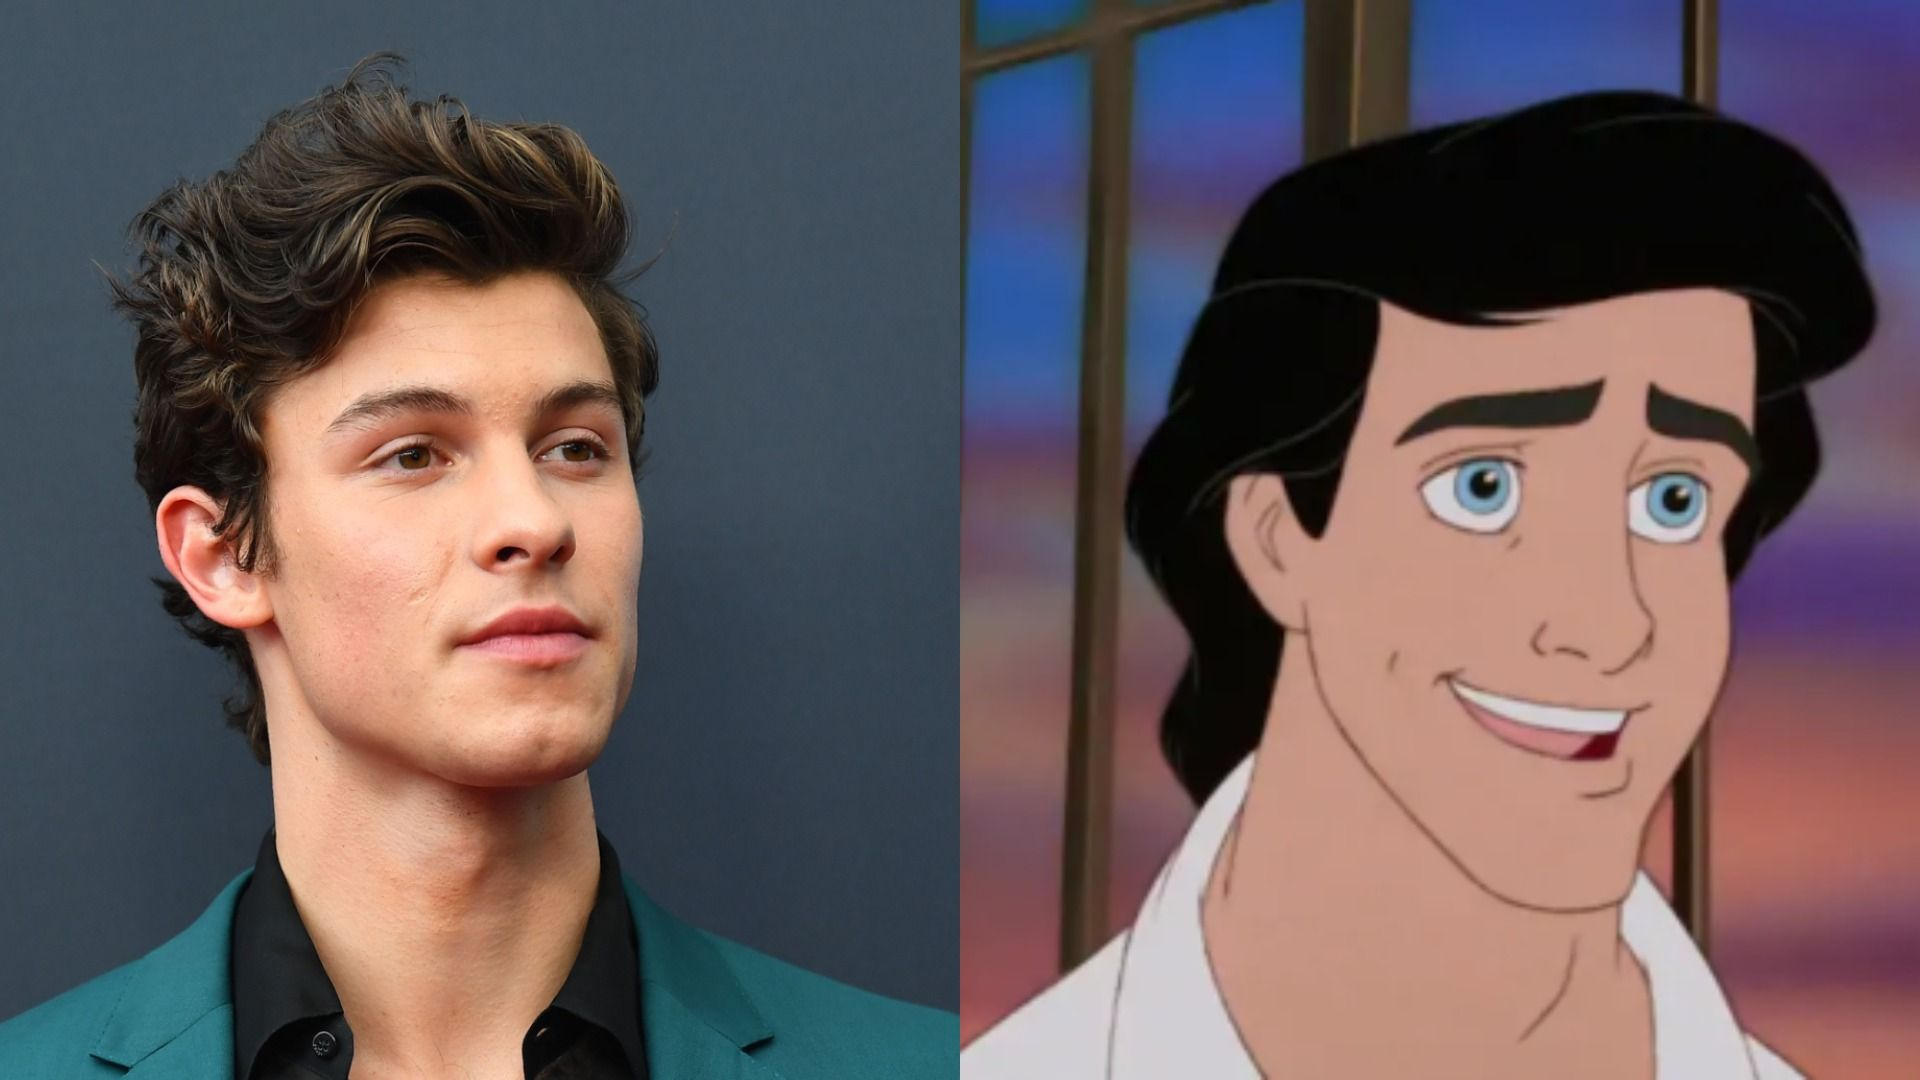 Fans Want Shawn Mendes To Play Prince Eric In Live Action Little